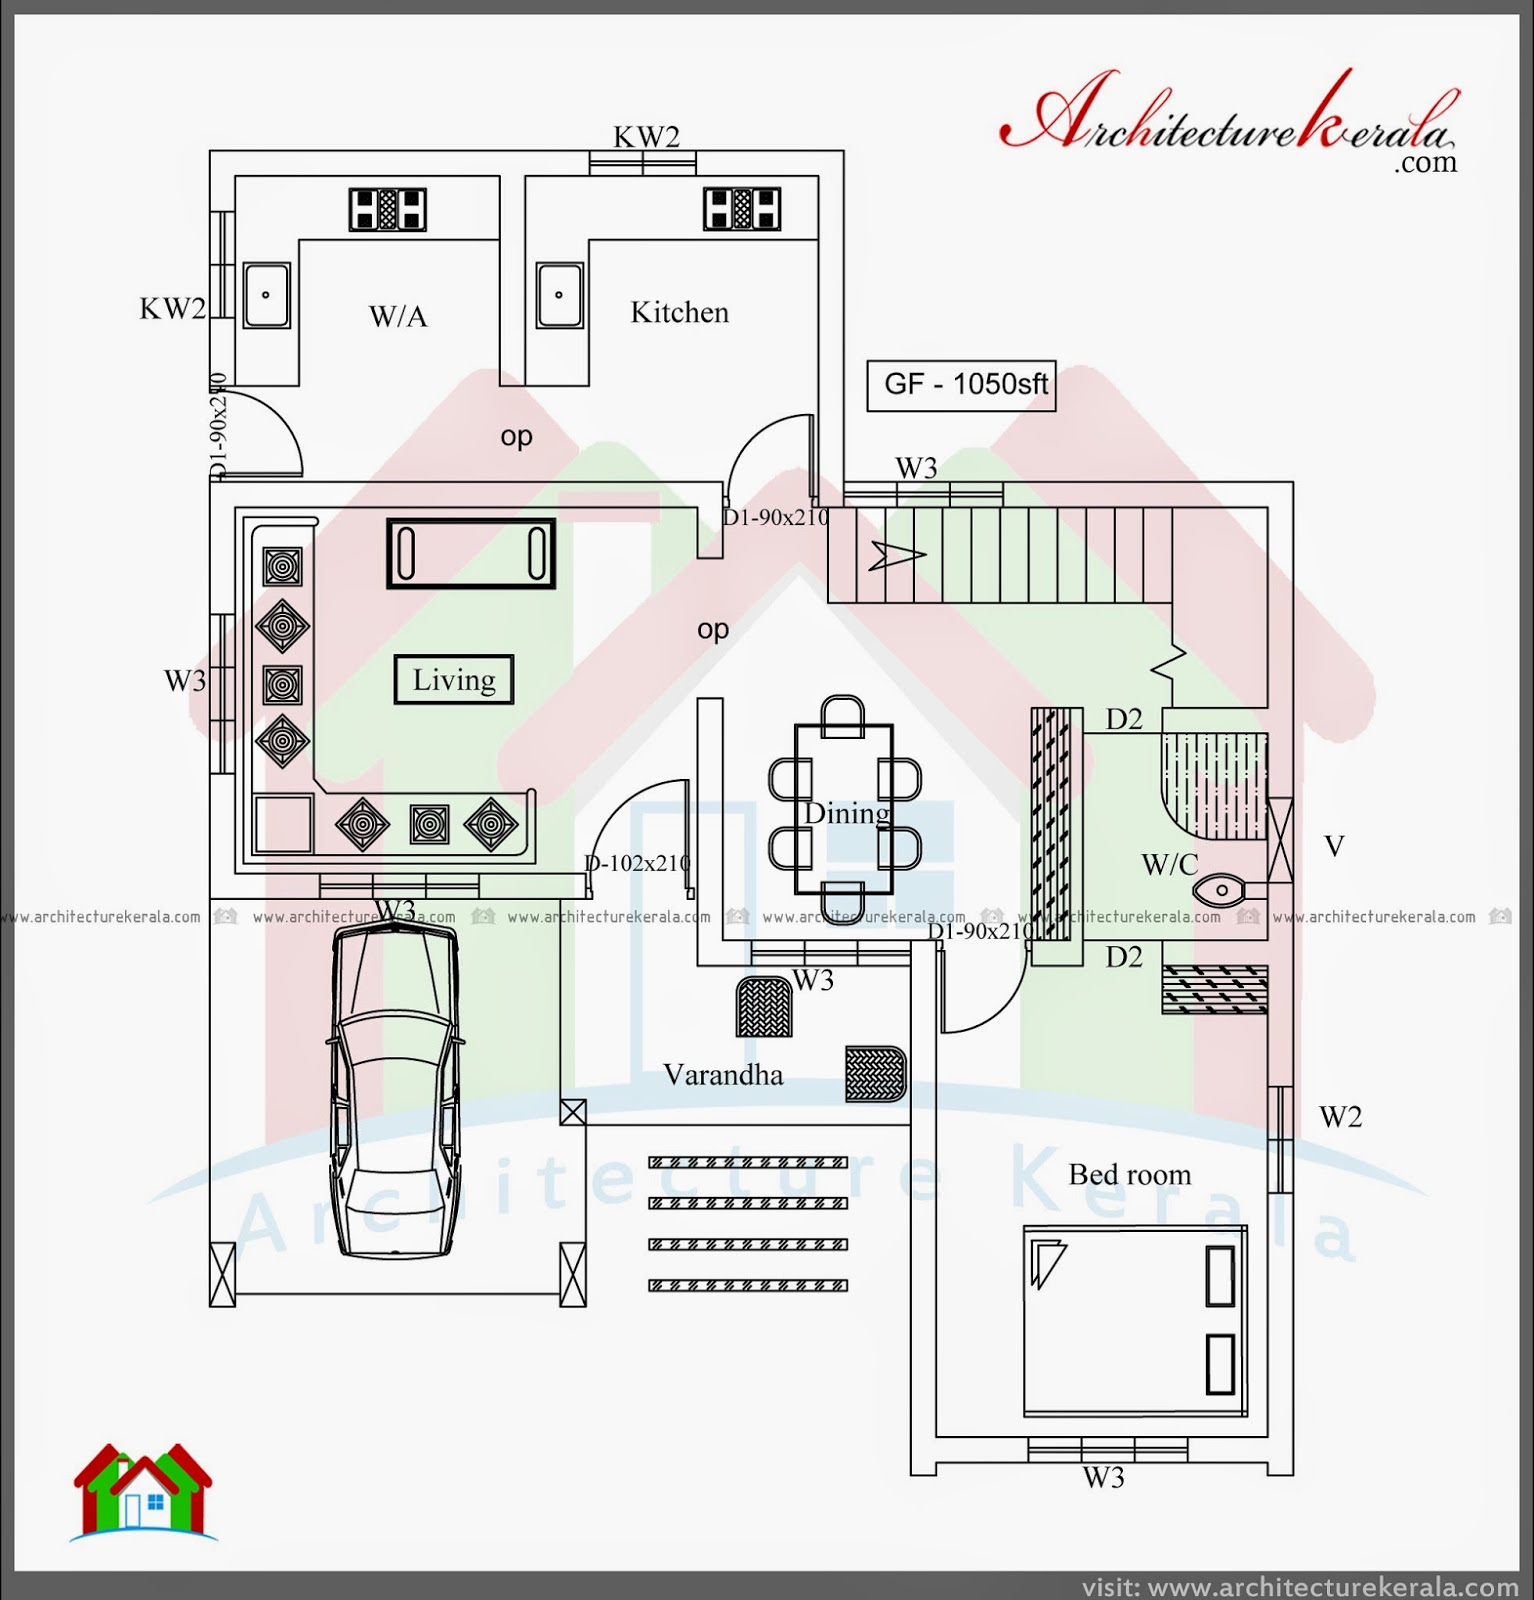 Three bedroom two storey house plan architecture kerala for Two storey house plans